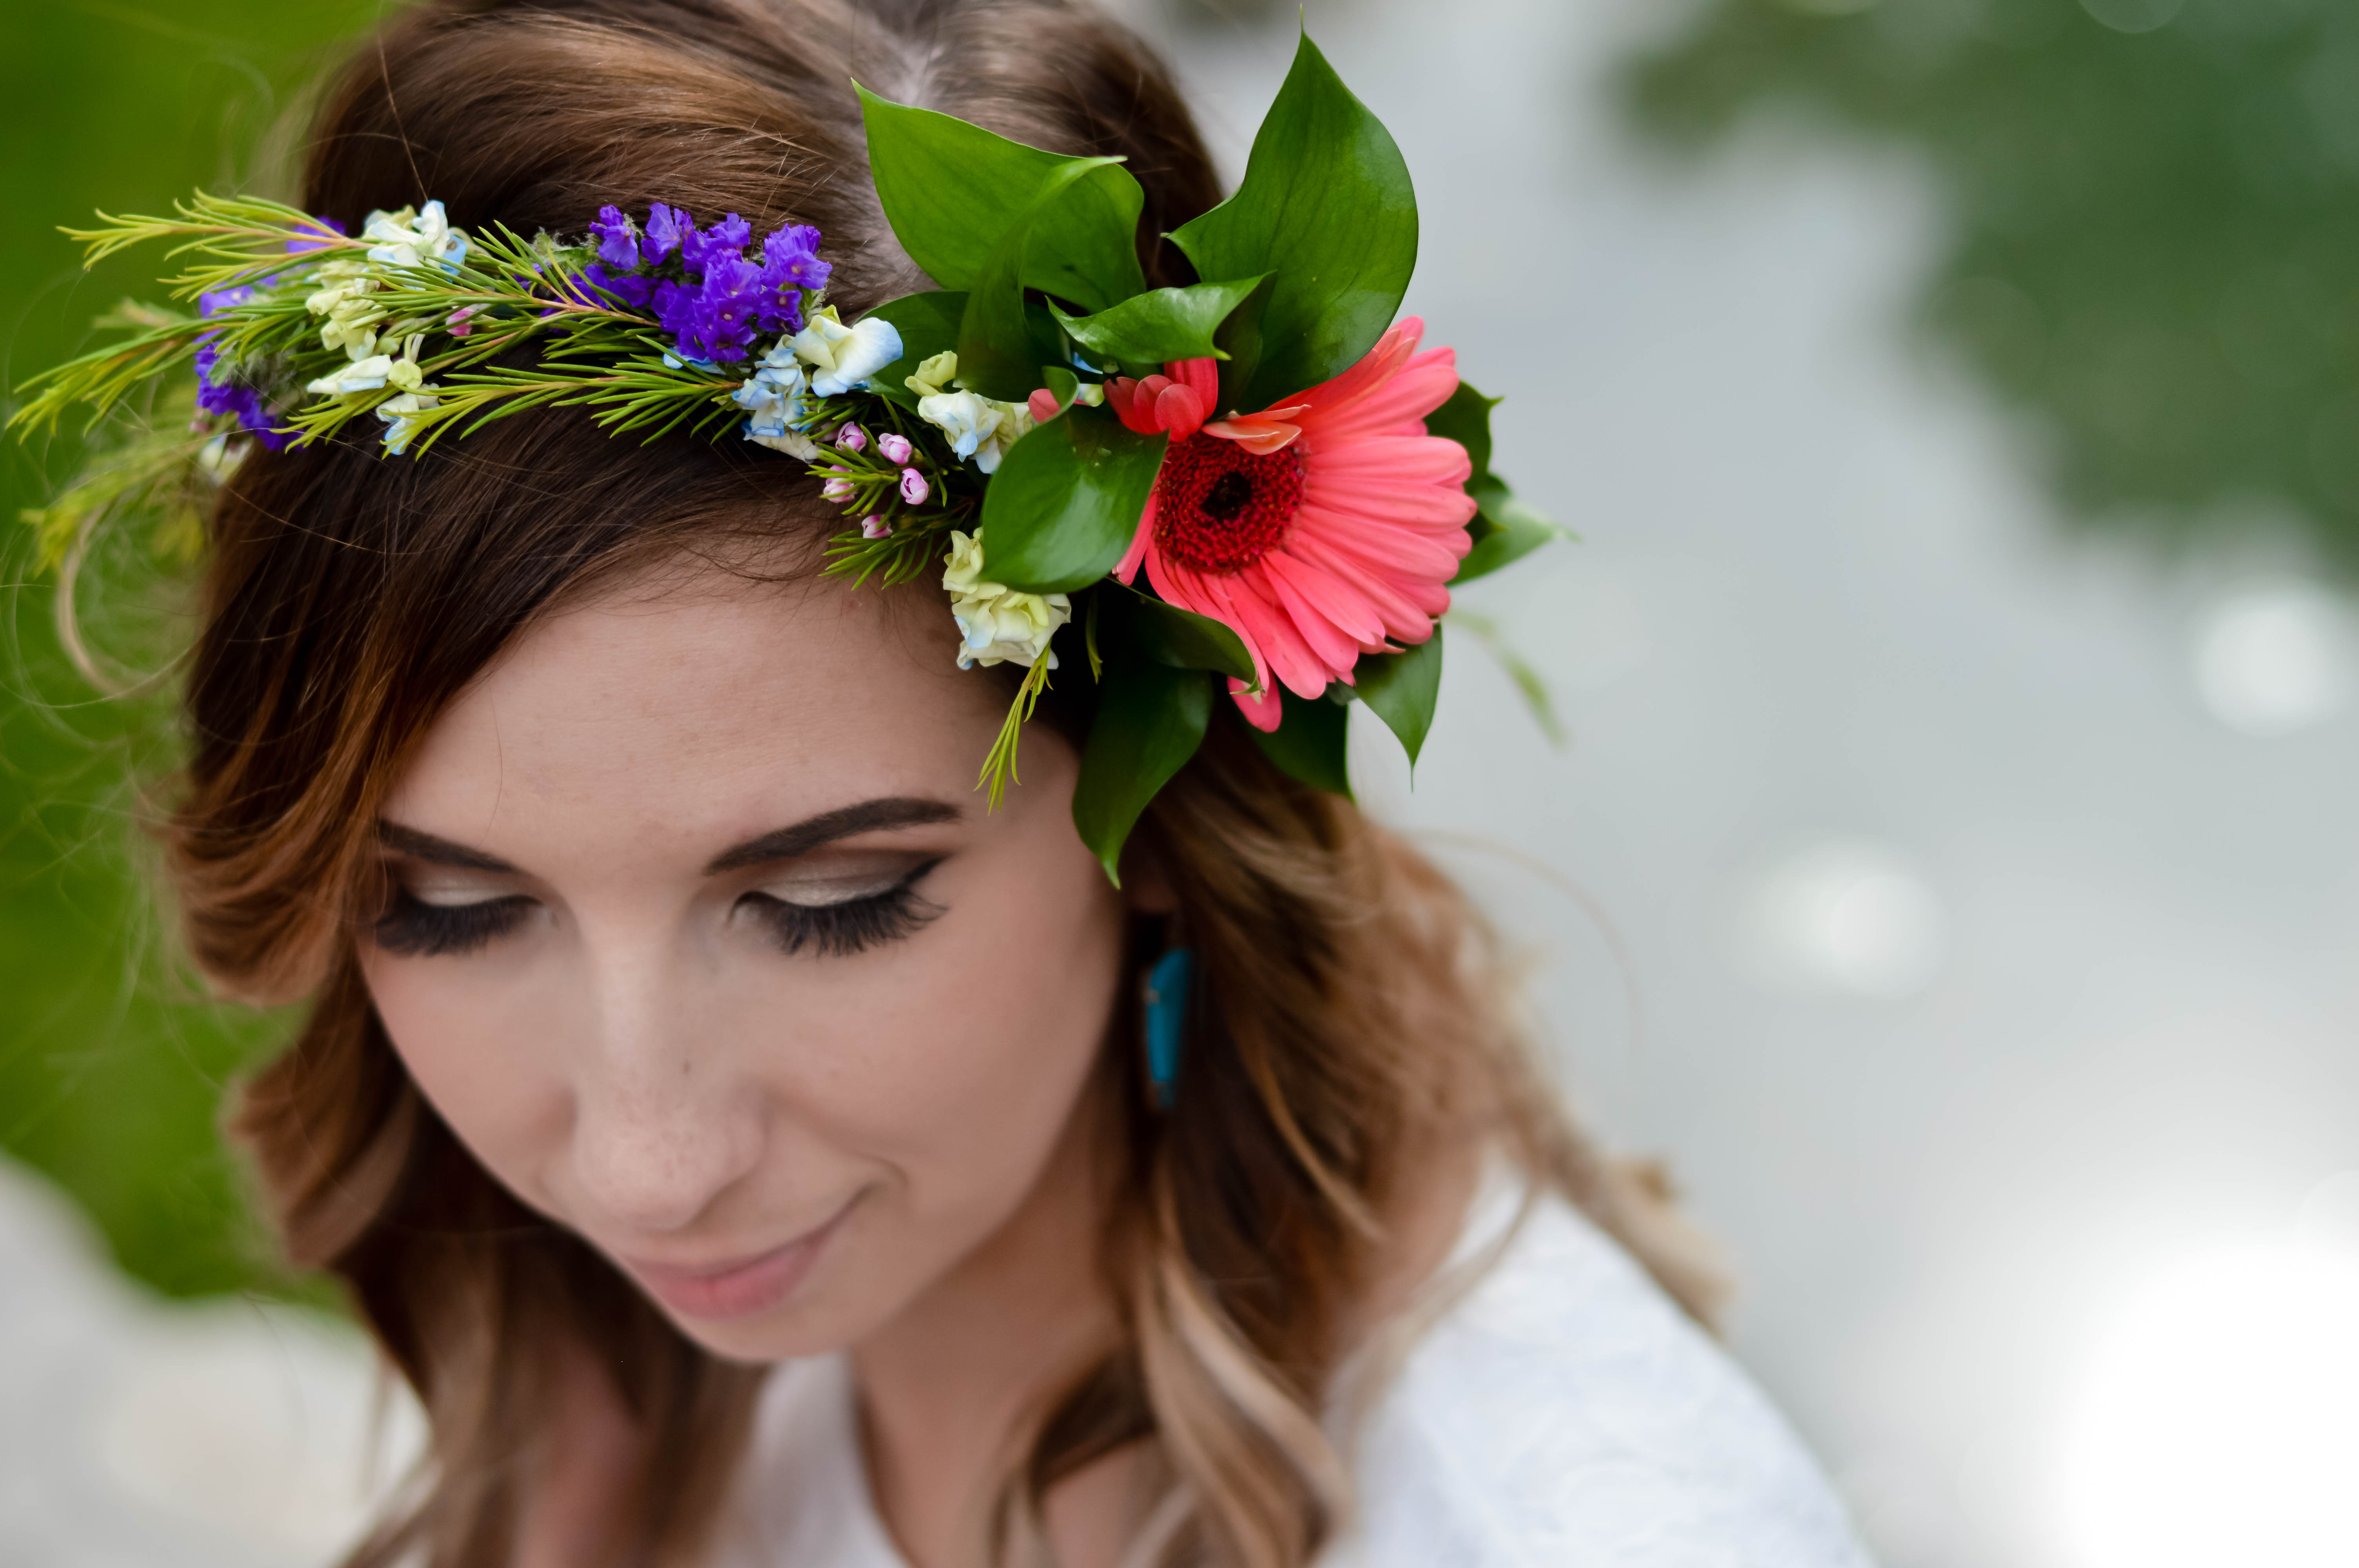 Three easy ways to style a white summer dress edgy girly in this handmade floral crown is made with real flowers and leaves floral tape and izmirmasajfo